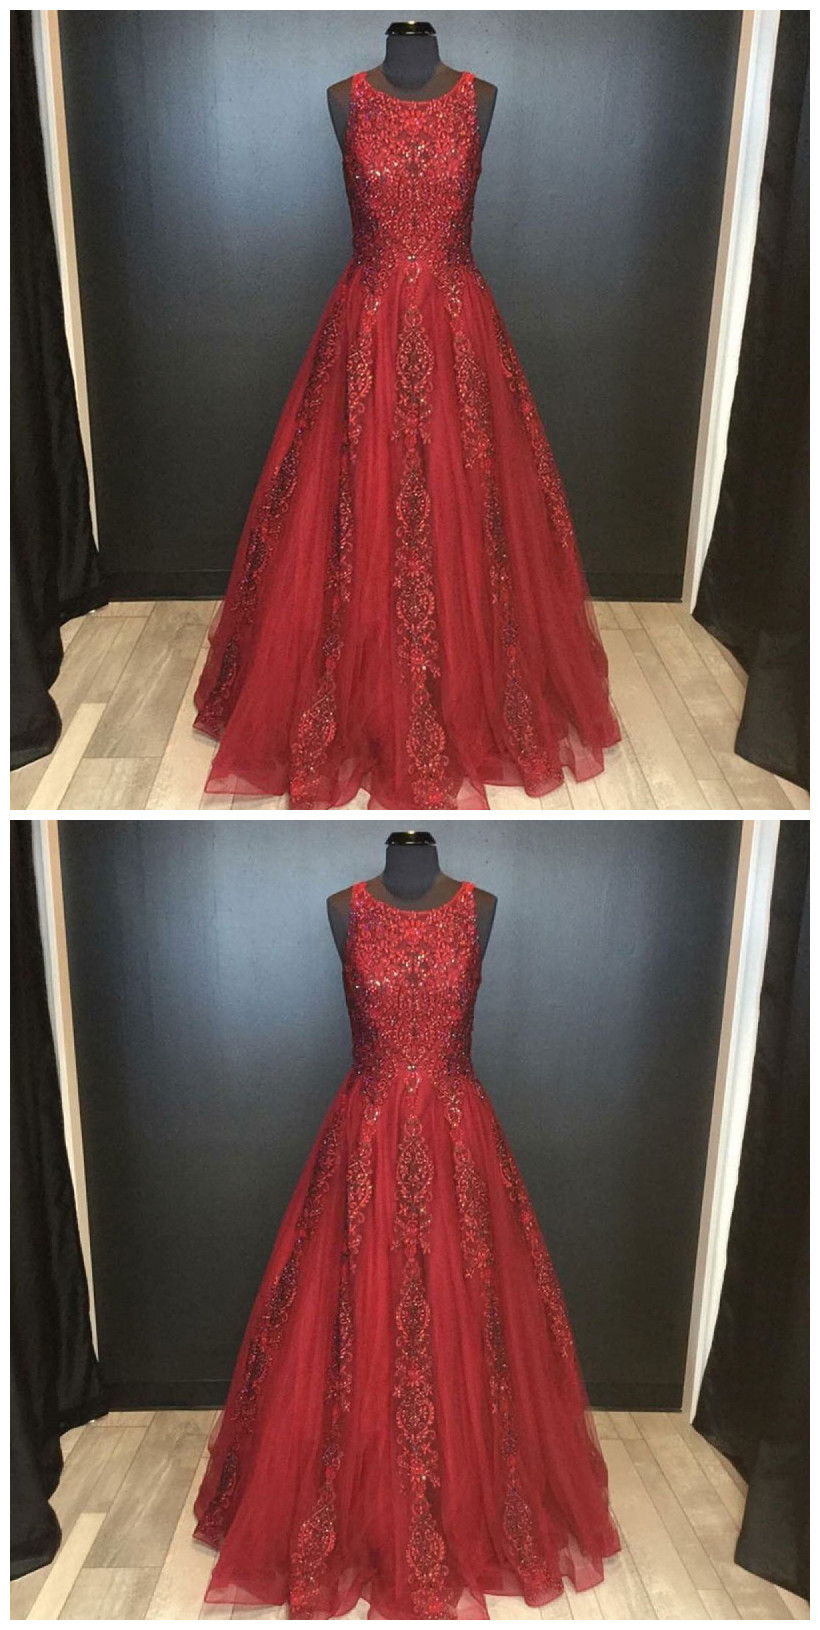 A-Line Round Neck Floor-Length Red Beaded Prom Dress with Lace